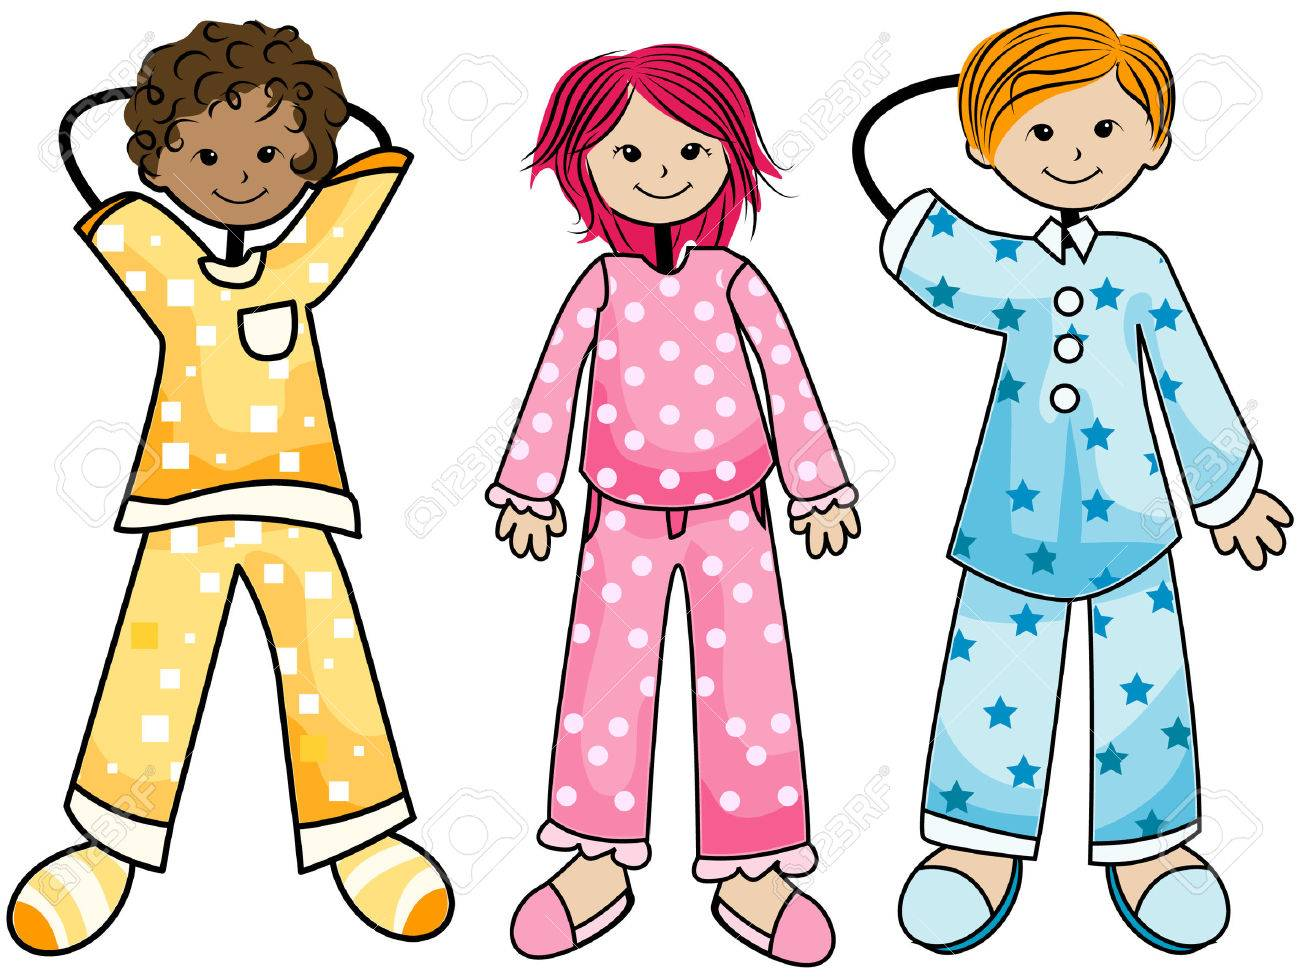 Pajama Kids with Clipping Path.